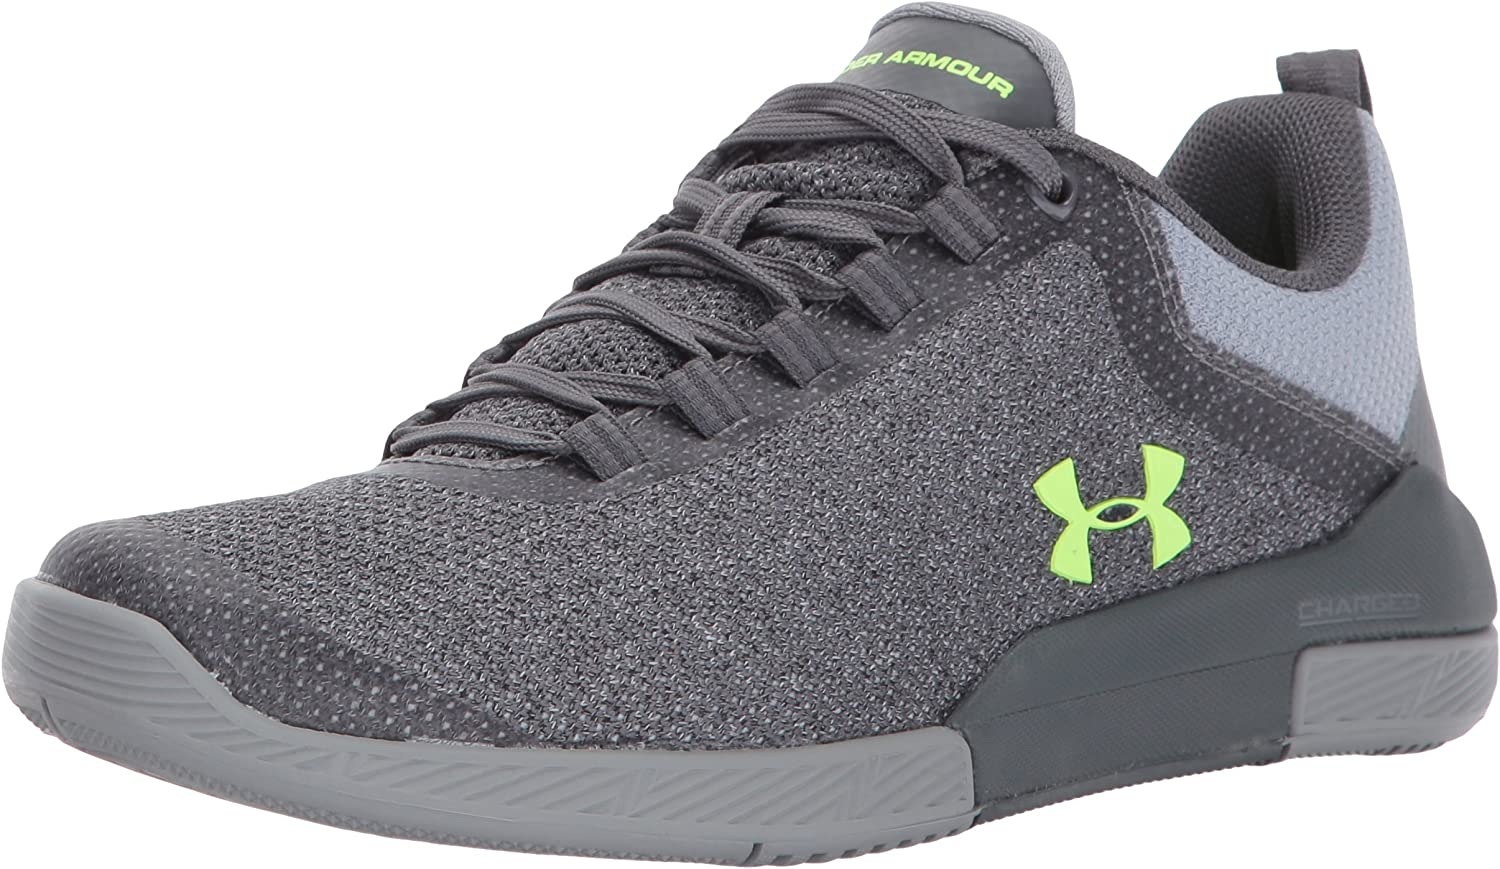 Under Armour Women's Charged Legend